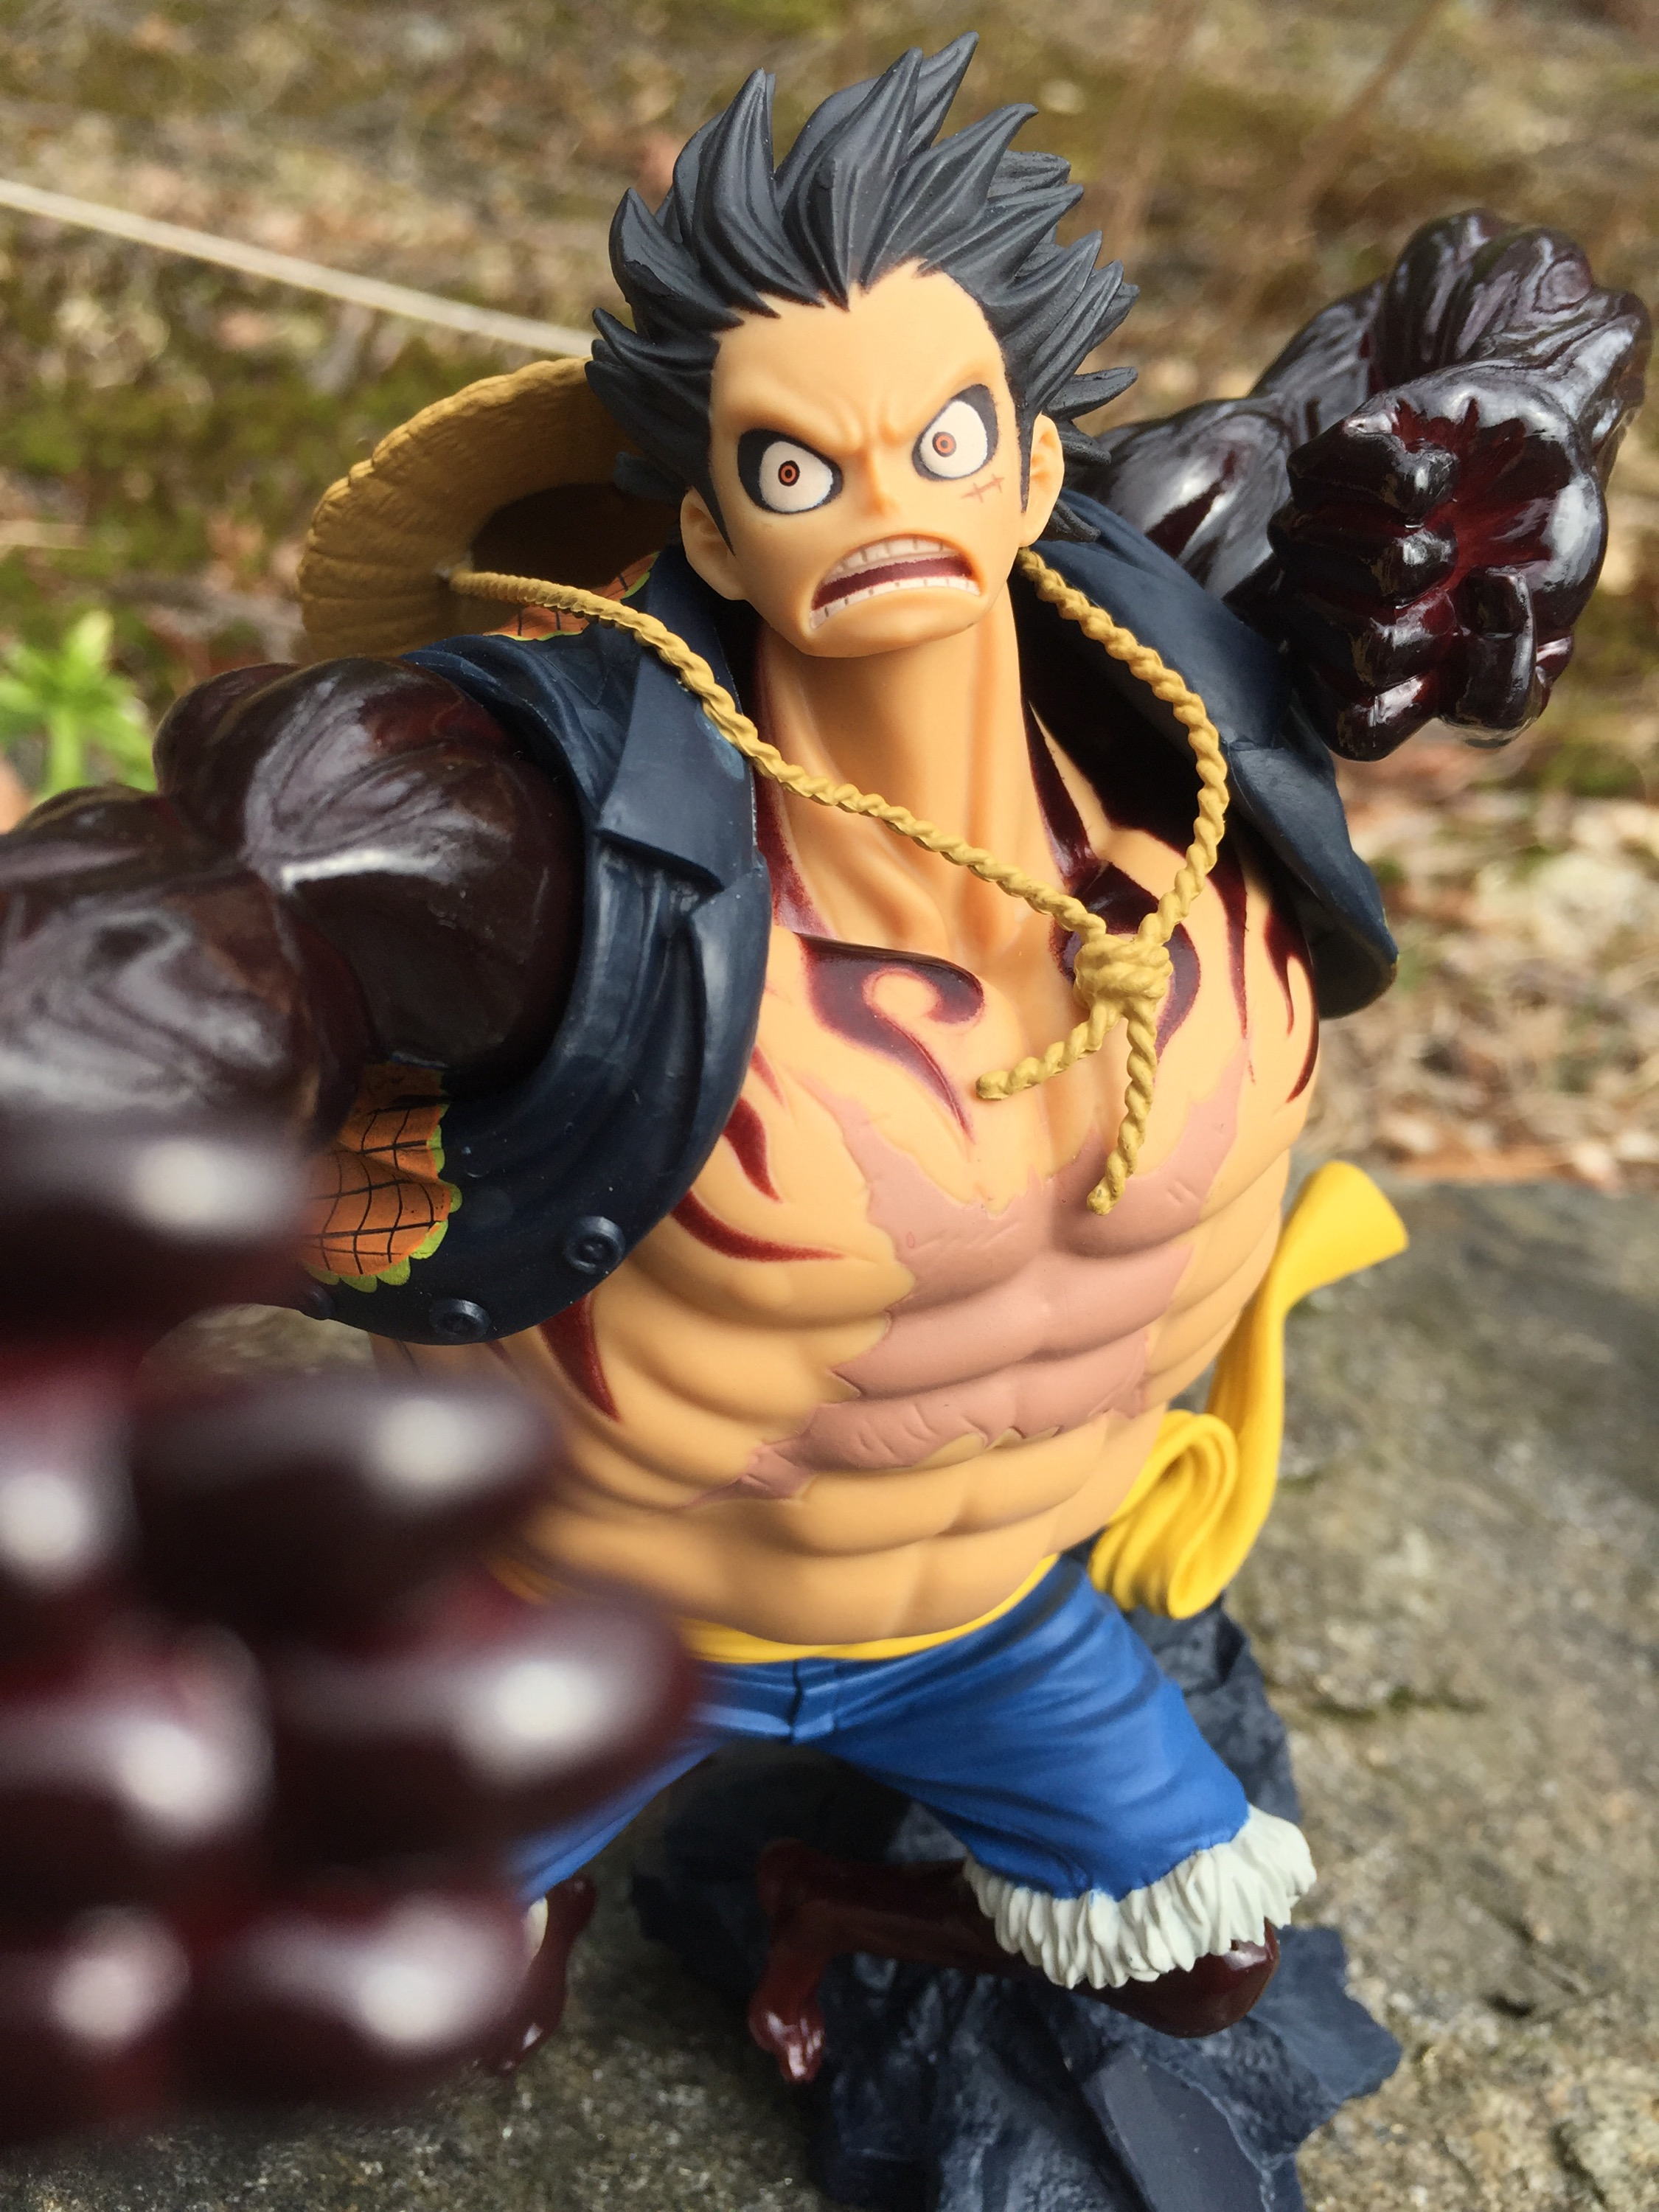 Anime one piece luffy gear 4th chalice exclusive *may 2021 preorder* · sale · regular price $44.99. One Piece SCultures Fourth Gear Luffy Figure Review! - One ...